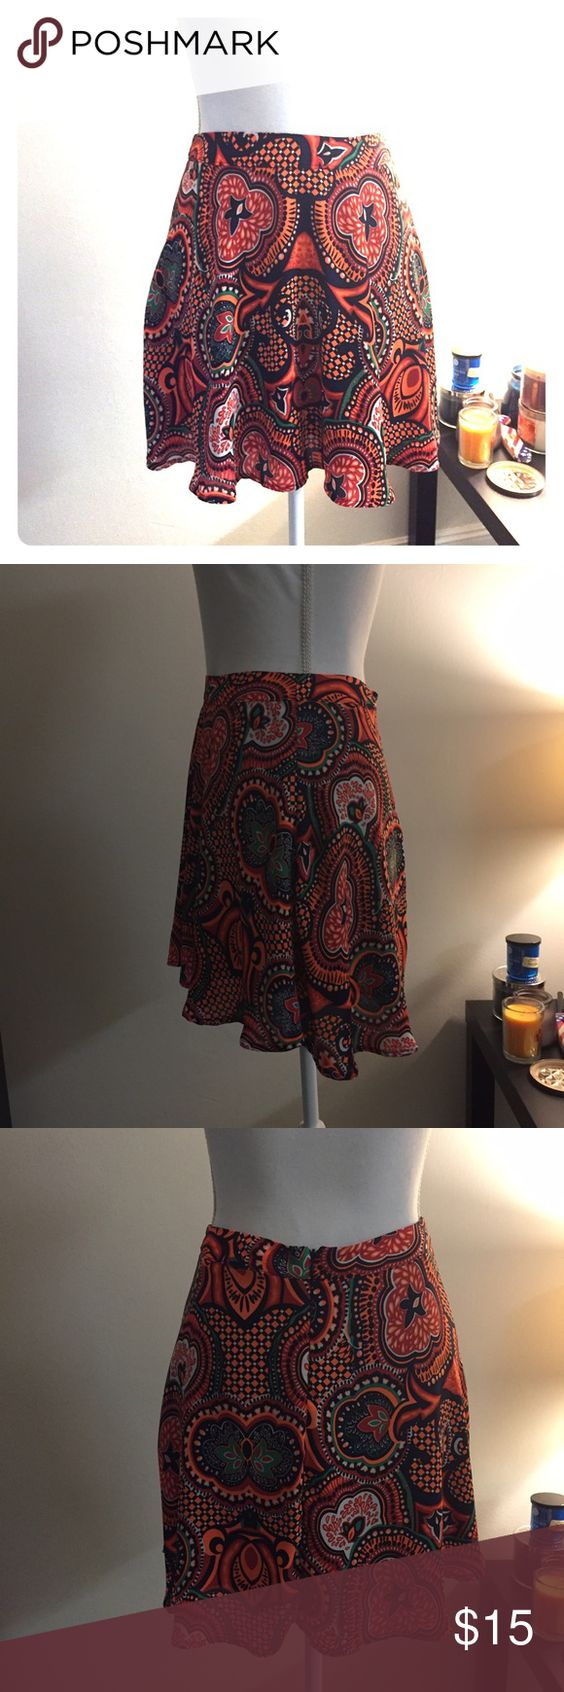 """Colorful patterned skater skirt Cute multicolored patterned skater skirt. Size XS but can fit a small. Waist is 28"""" length is 18"""" Forever 21 Skirts Mini"""